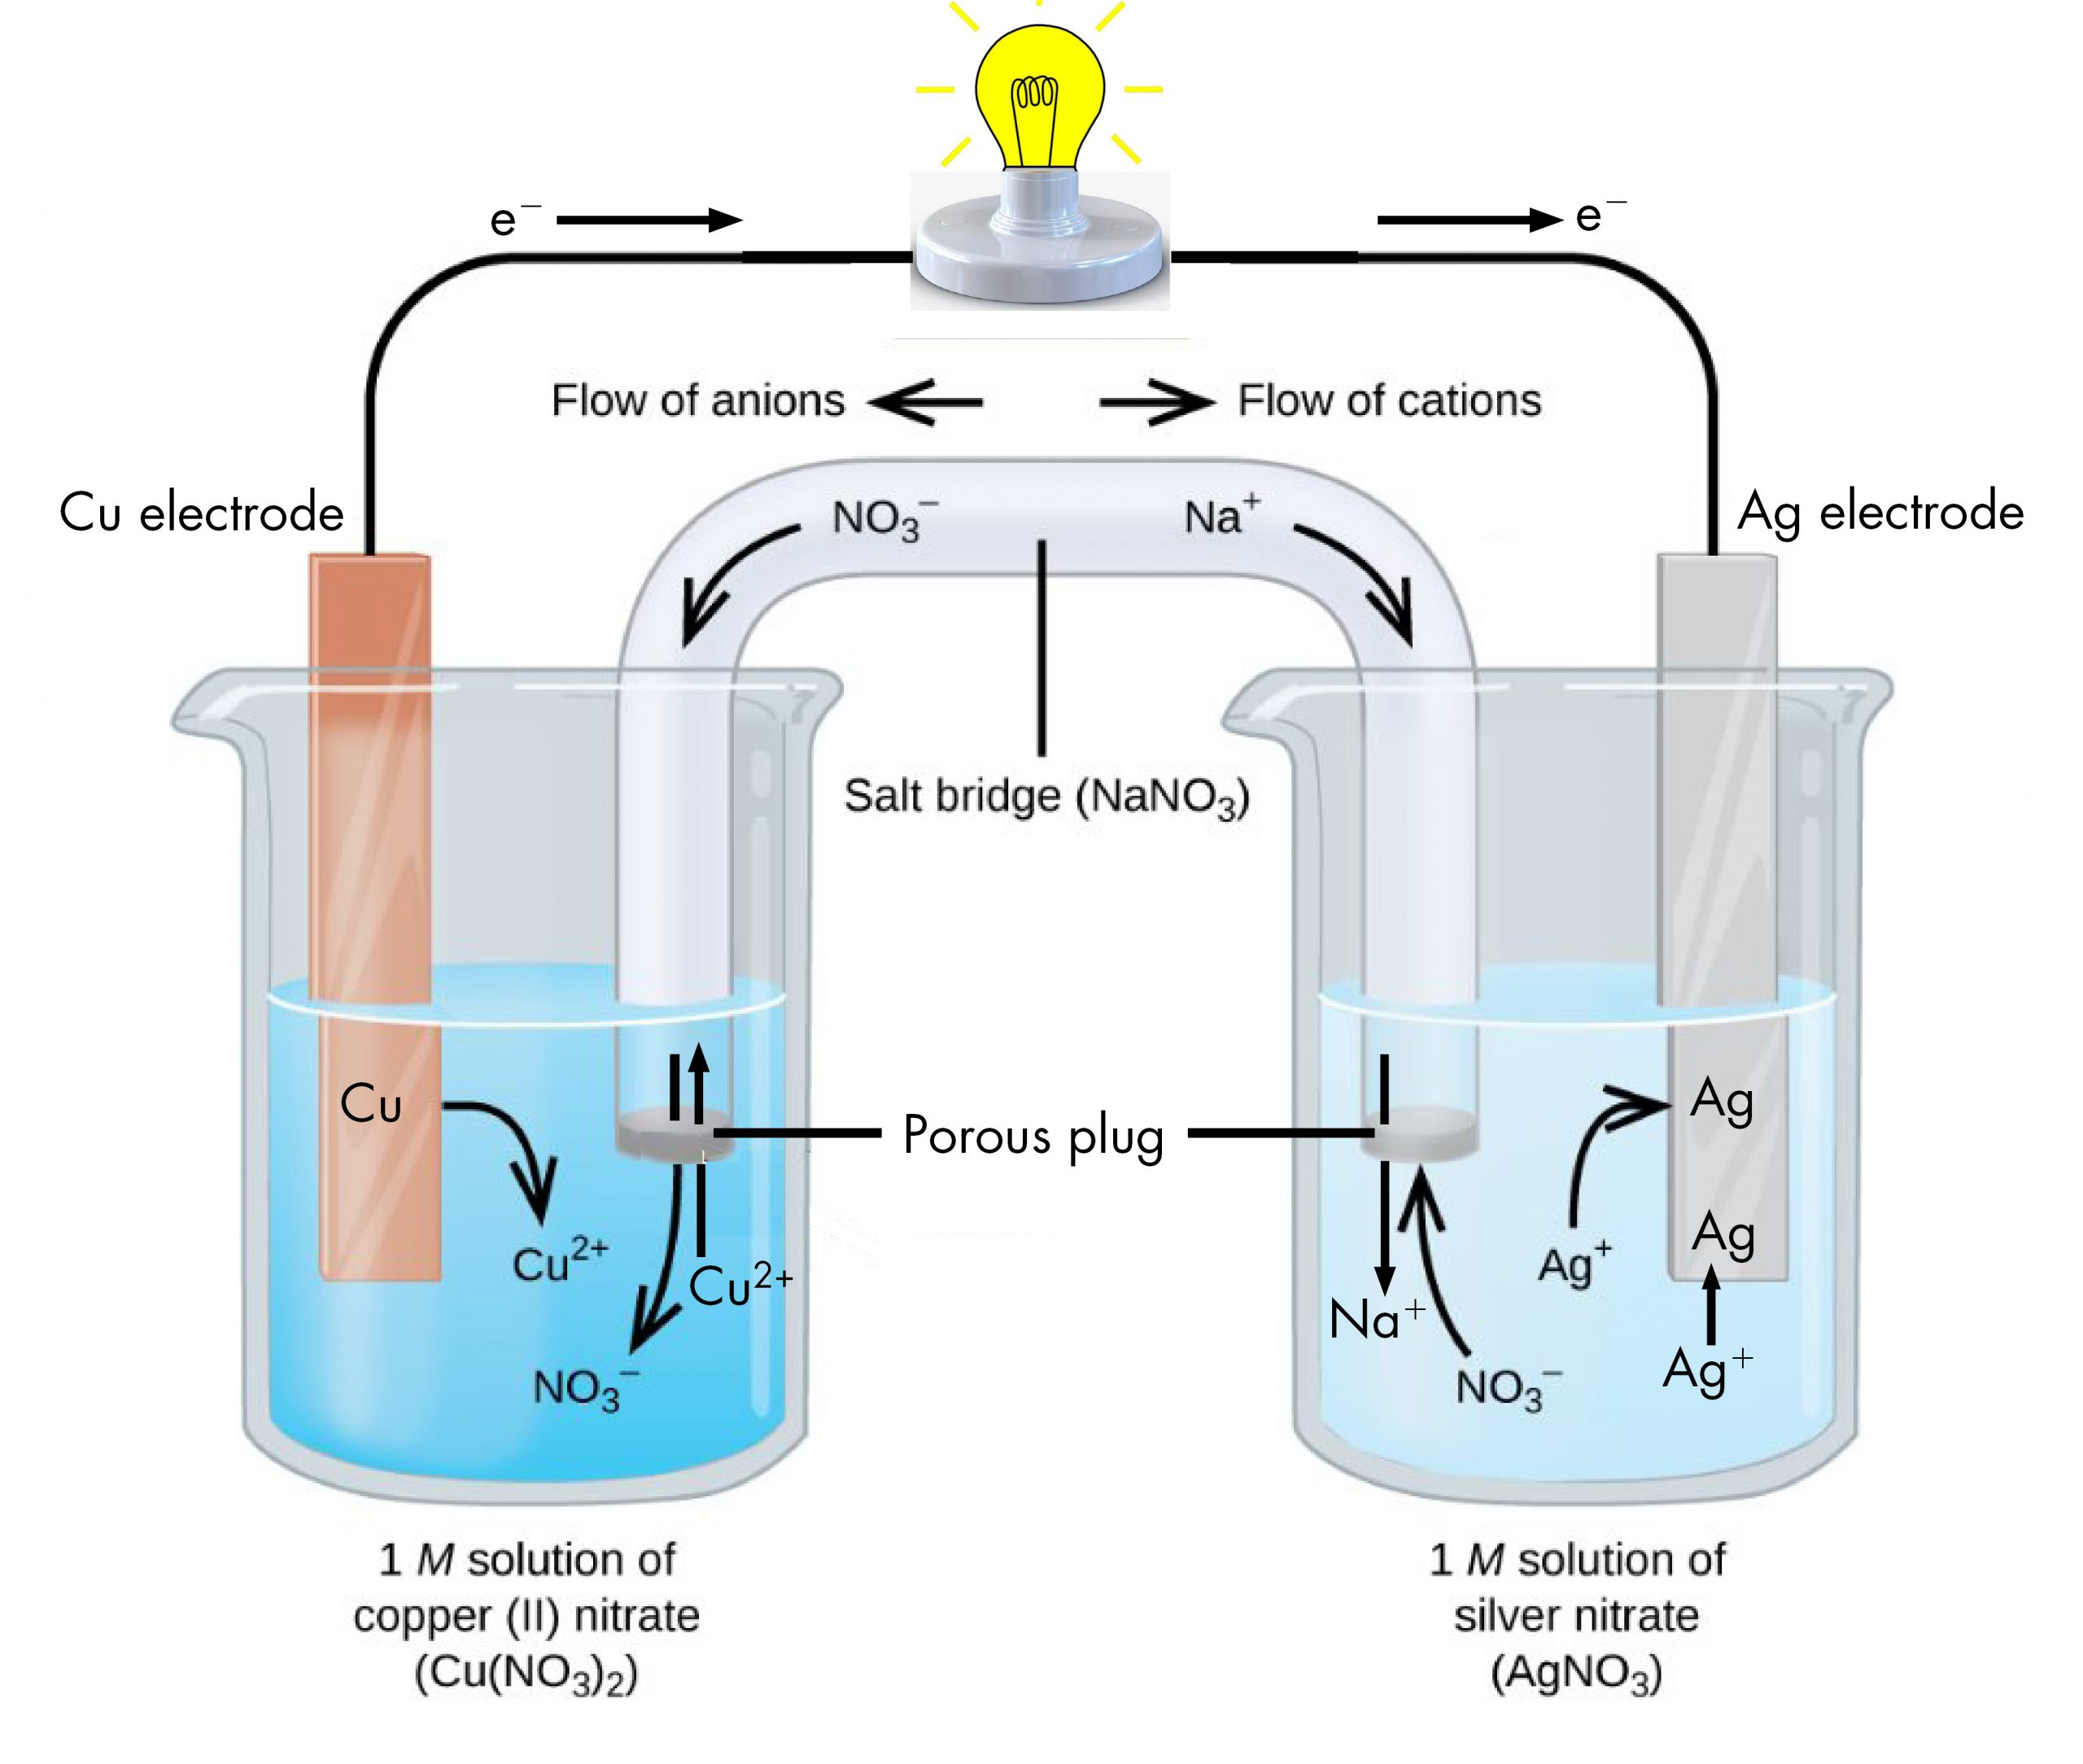 """This figure contains a diagram of an electrochemical cell. Two beakers are shown. Each is just over half full. The beaker on the left contains a blue solution and is labeled below as """"1 M solution of copper (II) nitrate ( C u ( N O subscript 3 ) subscript 2 )."""" The beaker on the right contains a colorless solution and is labeled below as """"1 M solution of silver nitrate ( A g N O subscript 3 )."""" A glass tube in the shape of an inverted U connects the two beakers at the center of the diagram. The tube contents are colorless. The ends of the tubes are beneath the surface of the solutions in the beakers and a small grey plug is present at each end of the tube. The plug in each beaker is labeled """"Porous plug."""" At the center of the diagram, the tube is labeled """"Salt bridge ( N a N O subscript 3 ). Each beaker shows a metal strip partially submerged in the liquid. The beaker on the left has an orange brown strip that is labeled """"C u electrode"""" at the top. The beaker on the right has a silver strip that is labeled """"A g electrode"""" at the top. A wire extends from the top of each of these strips to a socket and lighted light bulb at the center top of the figure. An arrow points toward the light bulb from the left which is labeled """"e superscript minus."""" Similarly, an arrow points away from the voltmeter to the right which is also labeled """"e superscript minus."""" A curved arrow extends from the C u strip into the surrounding solution. The base of this arrow is labeled """"C u"""" and the point of this arrow is labeled """"C u superscript 2 plus."""" A curved arrow extends from the salt bridge into the beaker on the left into the blue solution. The tip of this arrow is labeled """"N O subscript 3 superscript negative."""" An arrow extends from the beaker on the left into the salt bridge and is labeled """"C u superscript 2 superscript plus"""" in the beaker where the arrow begins. Two arrows extend from the solution in the beaker on the right to the A g strip. The base of each arrow is labeled """"A g supers"""